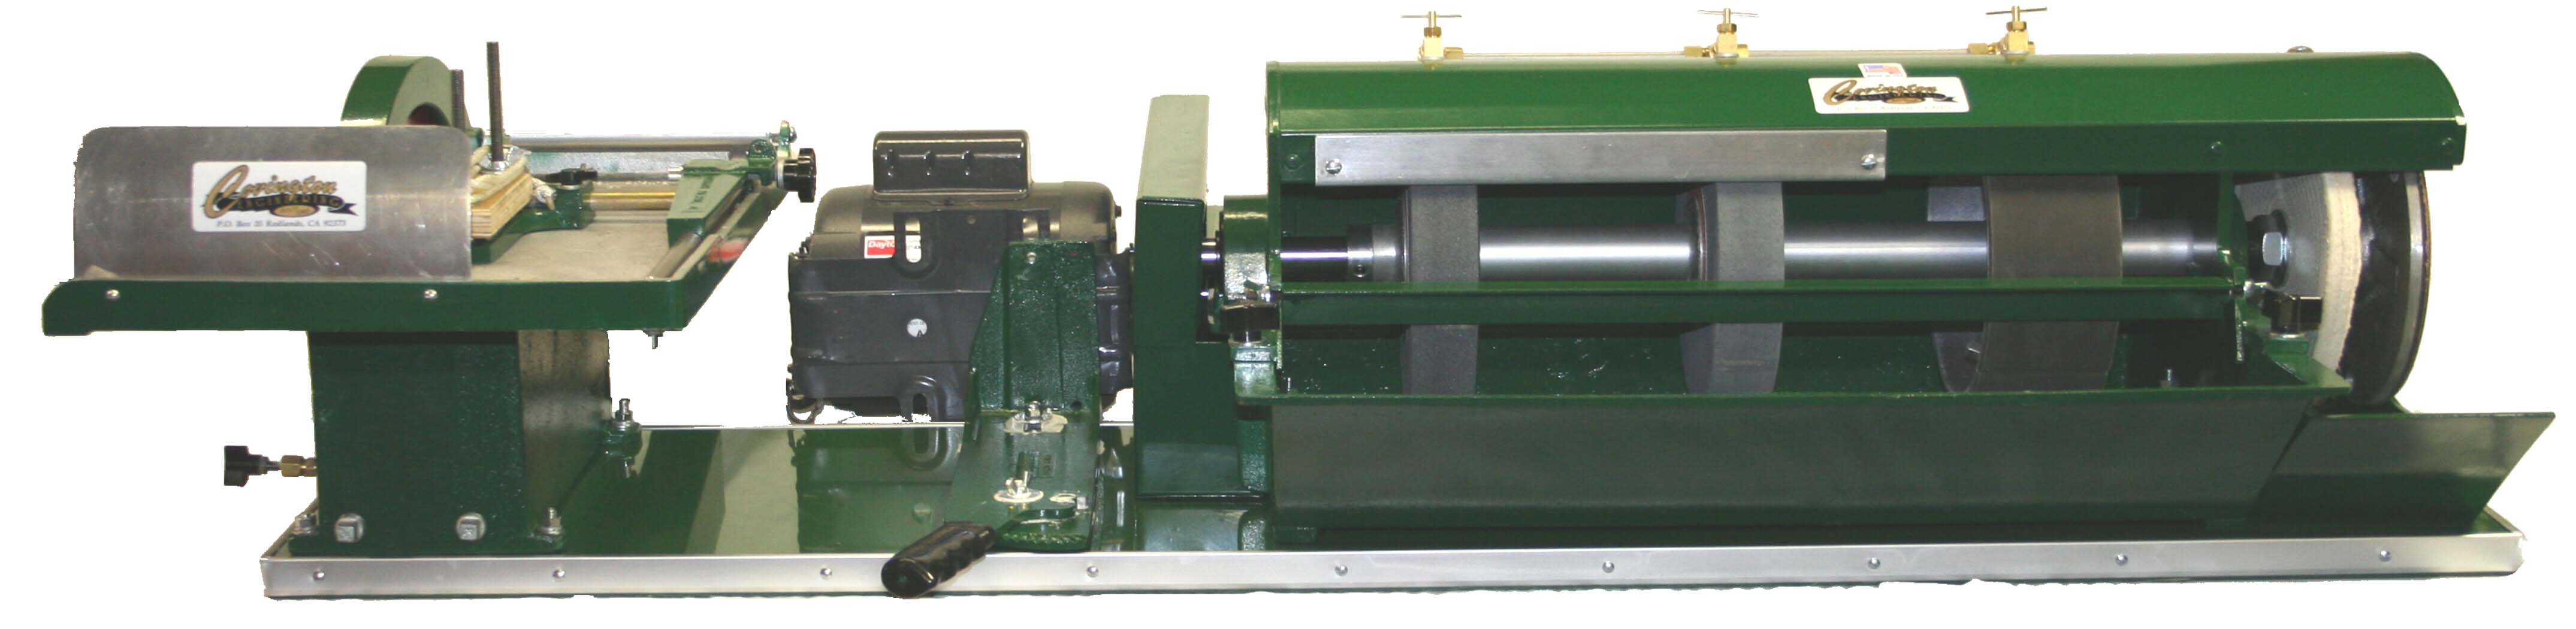 8 inch Silicon Carbide Combination machine with 10 inch trim saw and Power Feed 446dsp